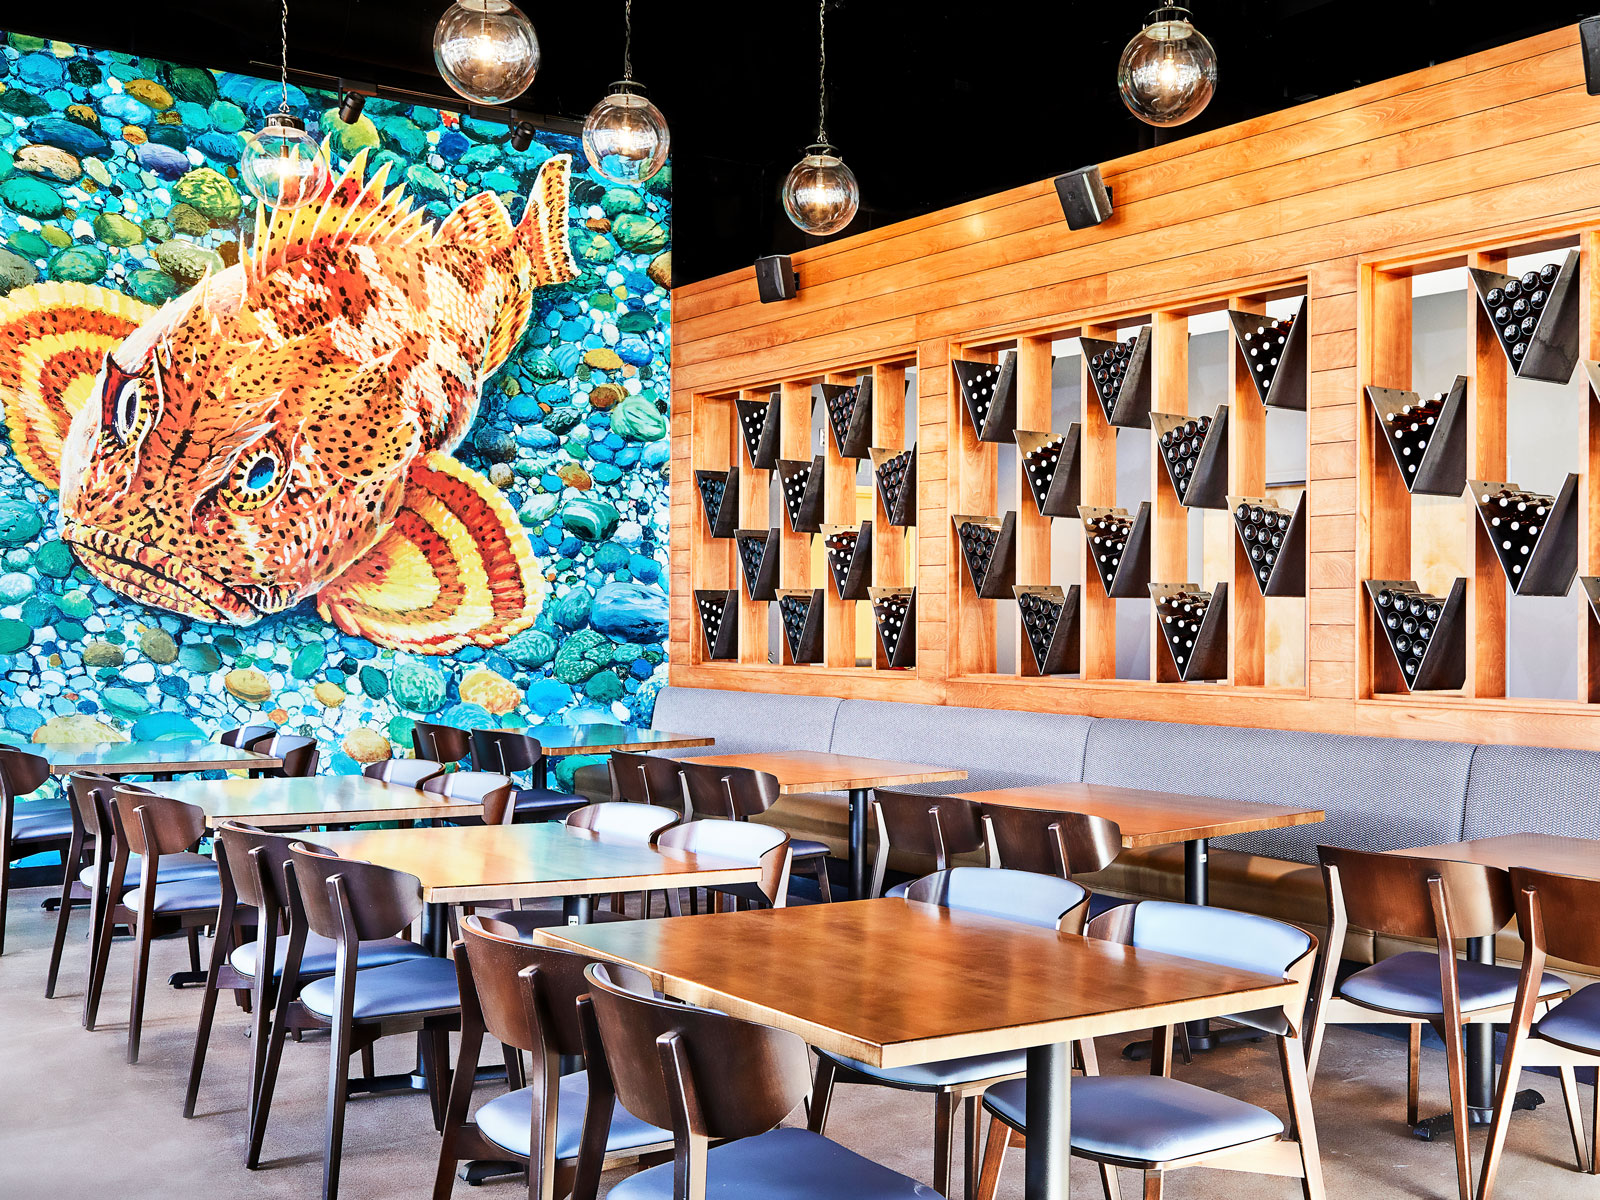 Ballast Point's Disneyland Resort Brewery Officially Opens Next Week